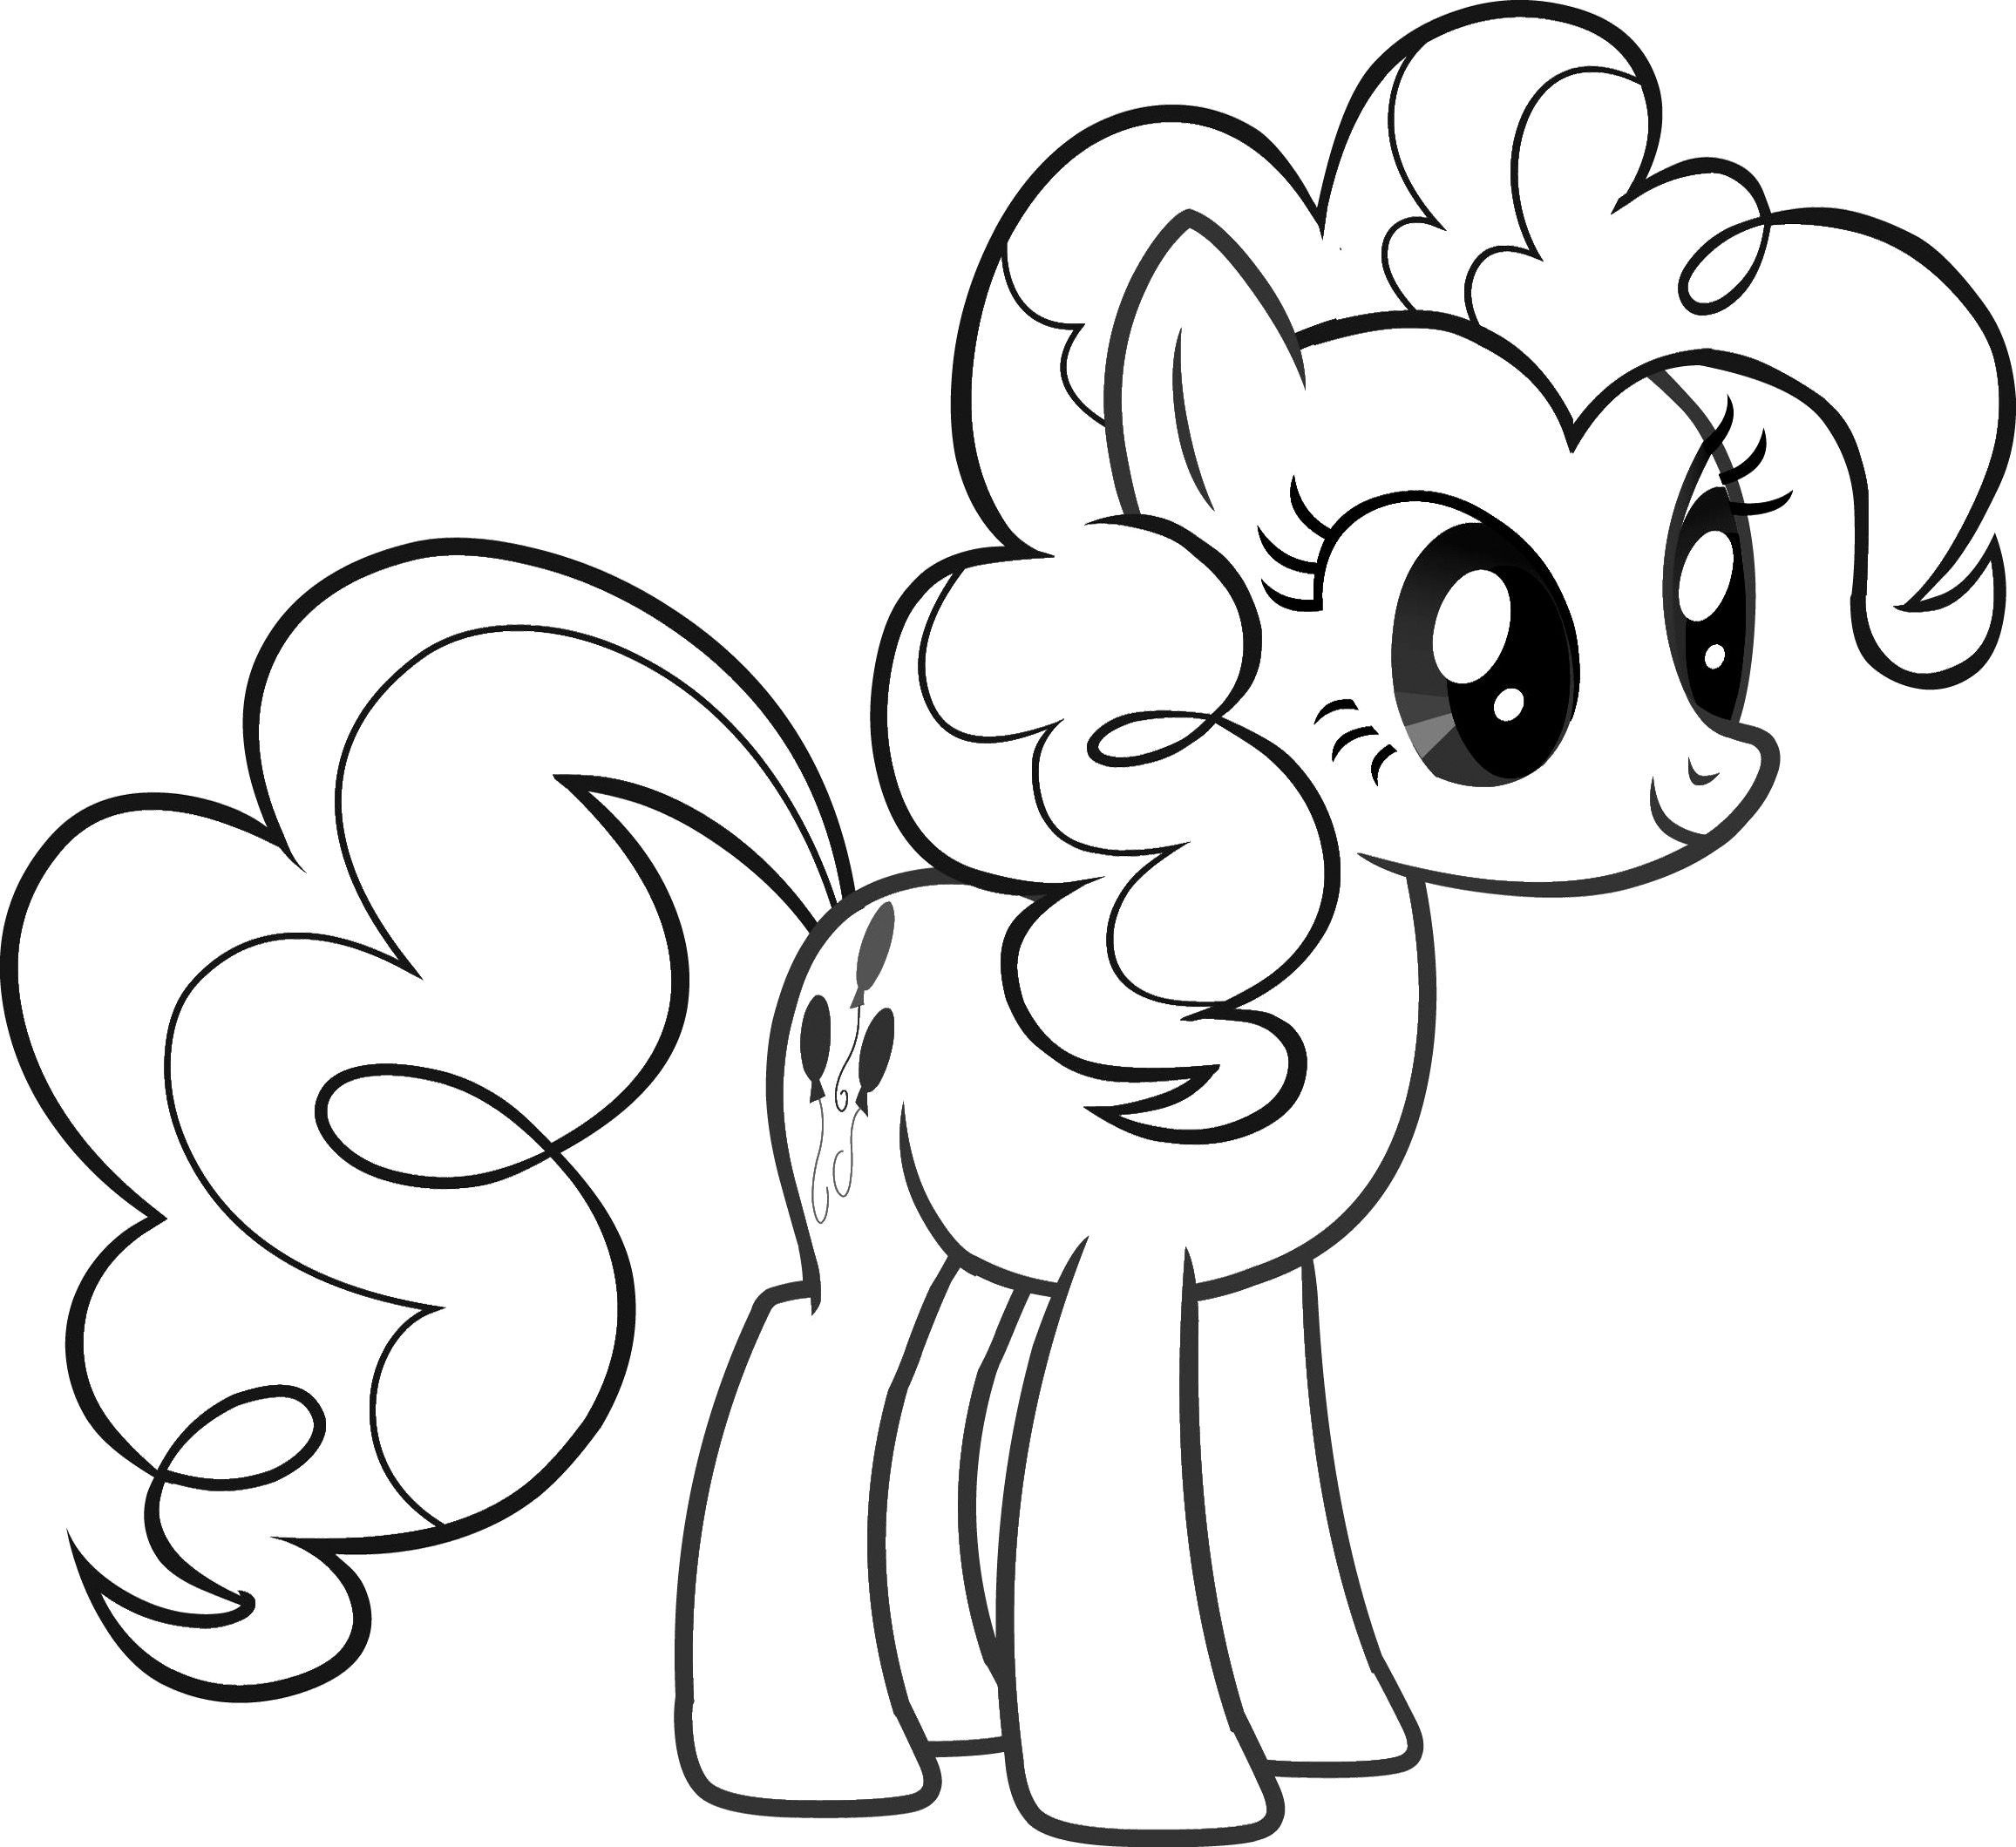 My Little Pony Coloring Pages Pinkie Pie My Little Pony Coloring Pages Baby Pinkie Pie Pokemon Coloring Pages My Little Pony Printable My Little Pony Coloring